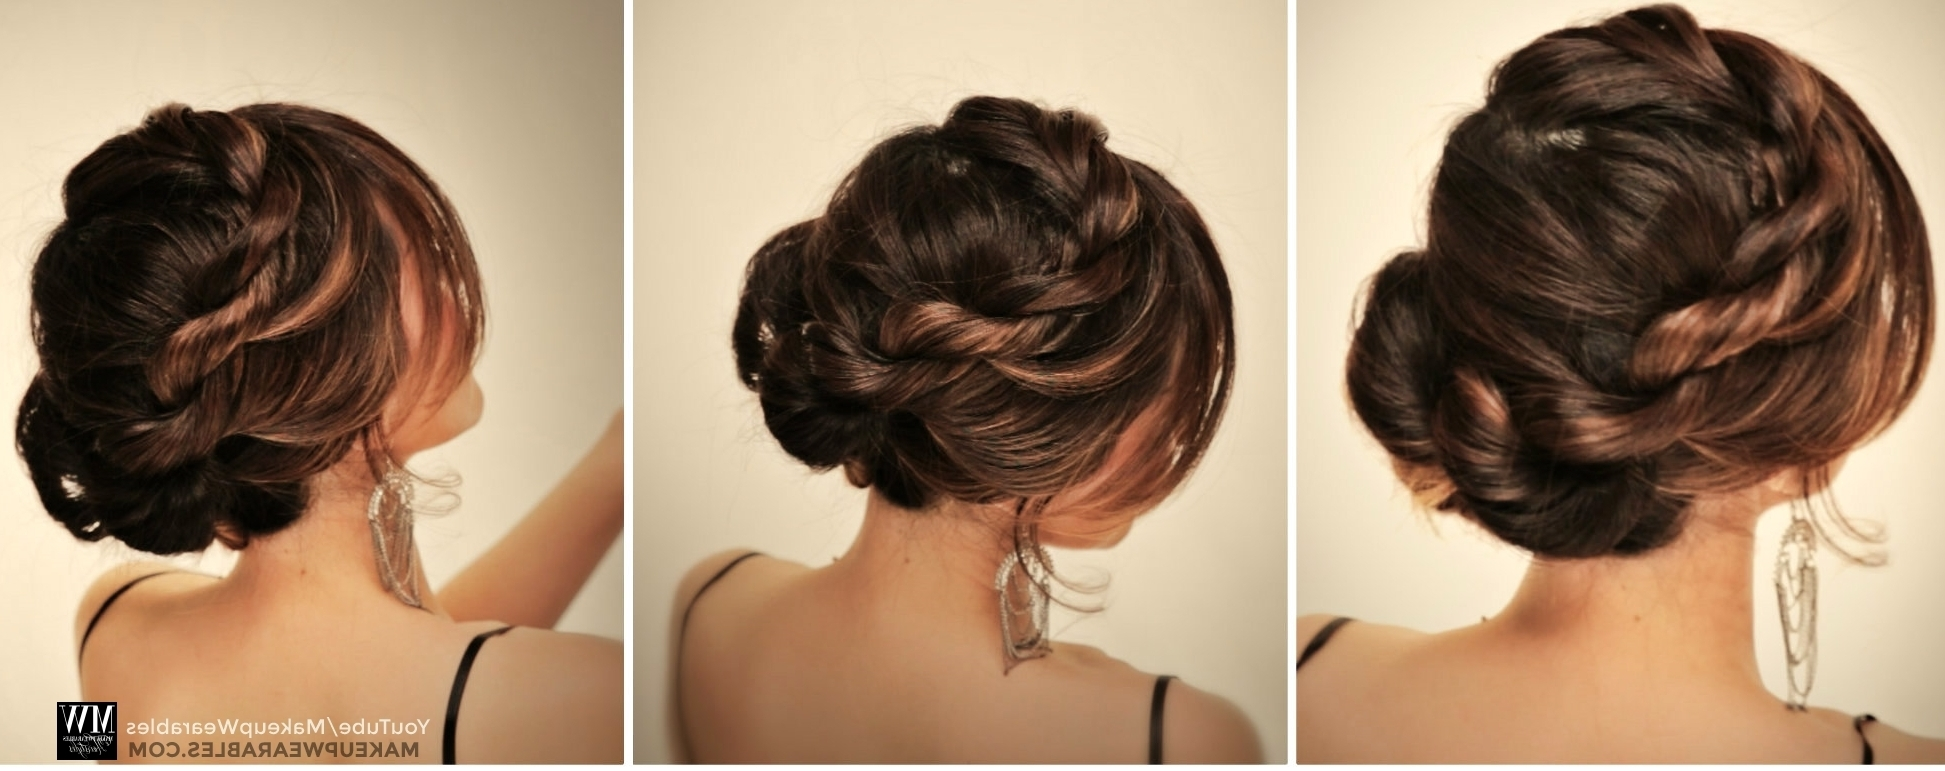 How To: 5 Amazingly Cute + Easy Hairstyles With A Simple Twist Inside Simple Hair Updo Hairstyles (View 6 of 15)